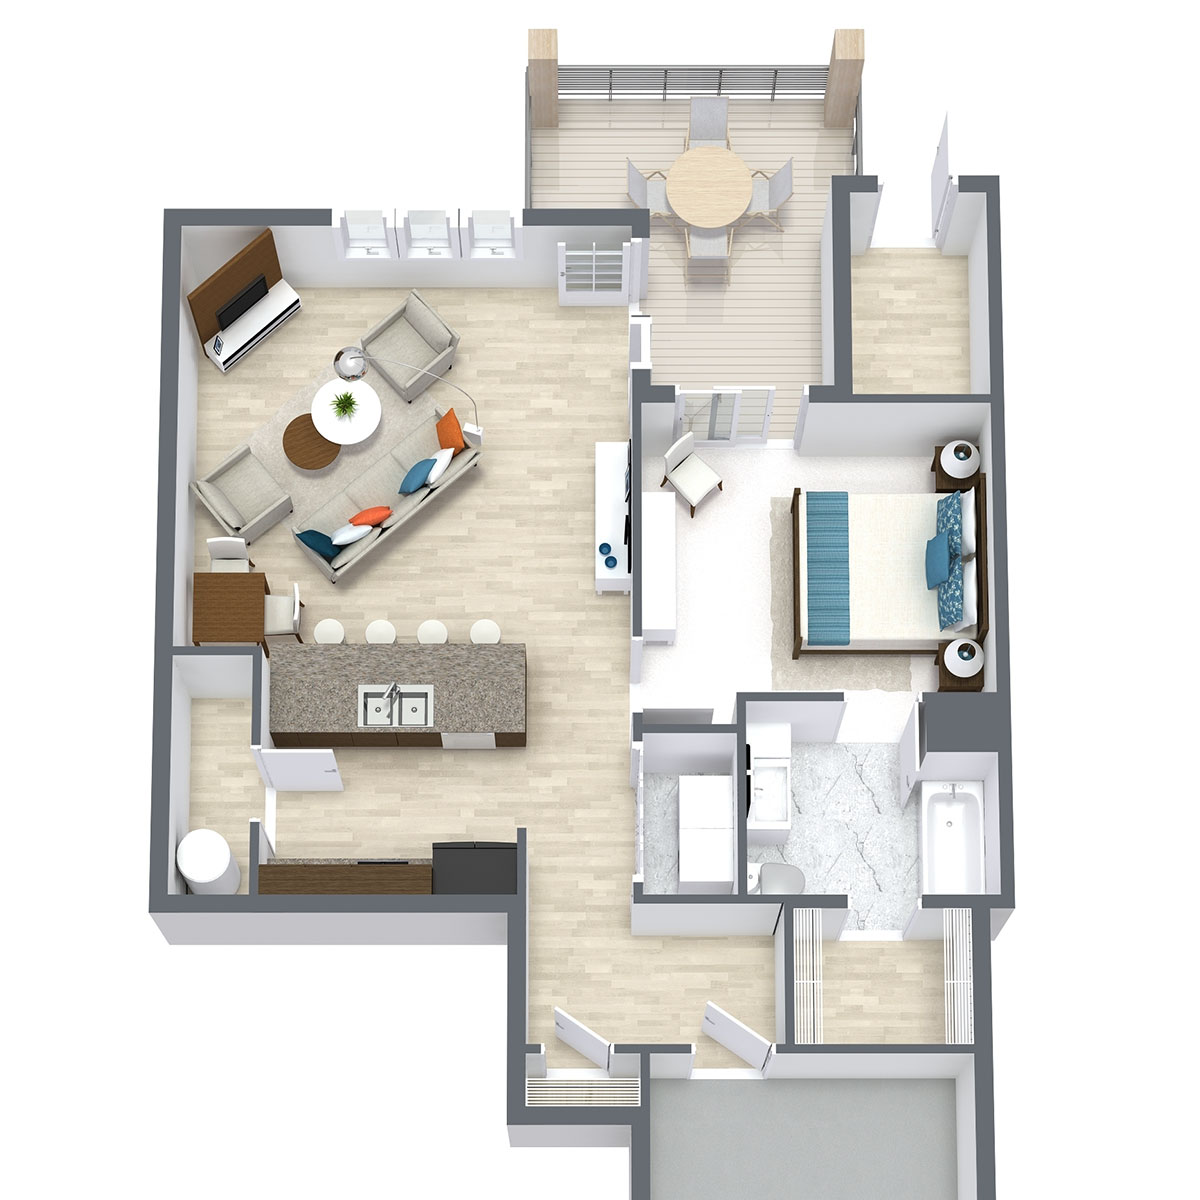 Floorplan - One Bed One Bath 787 image